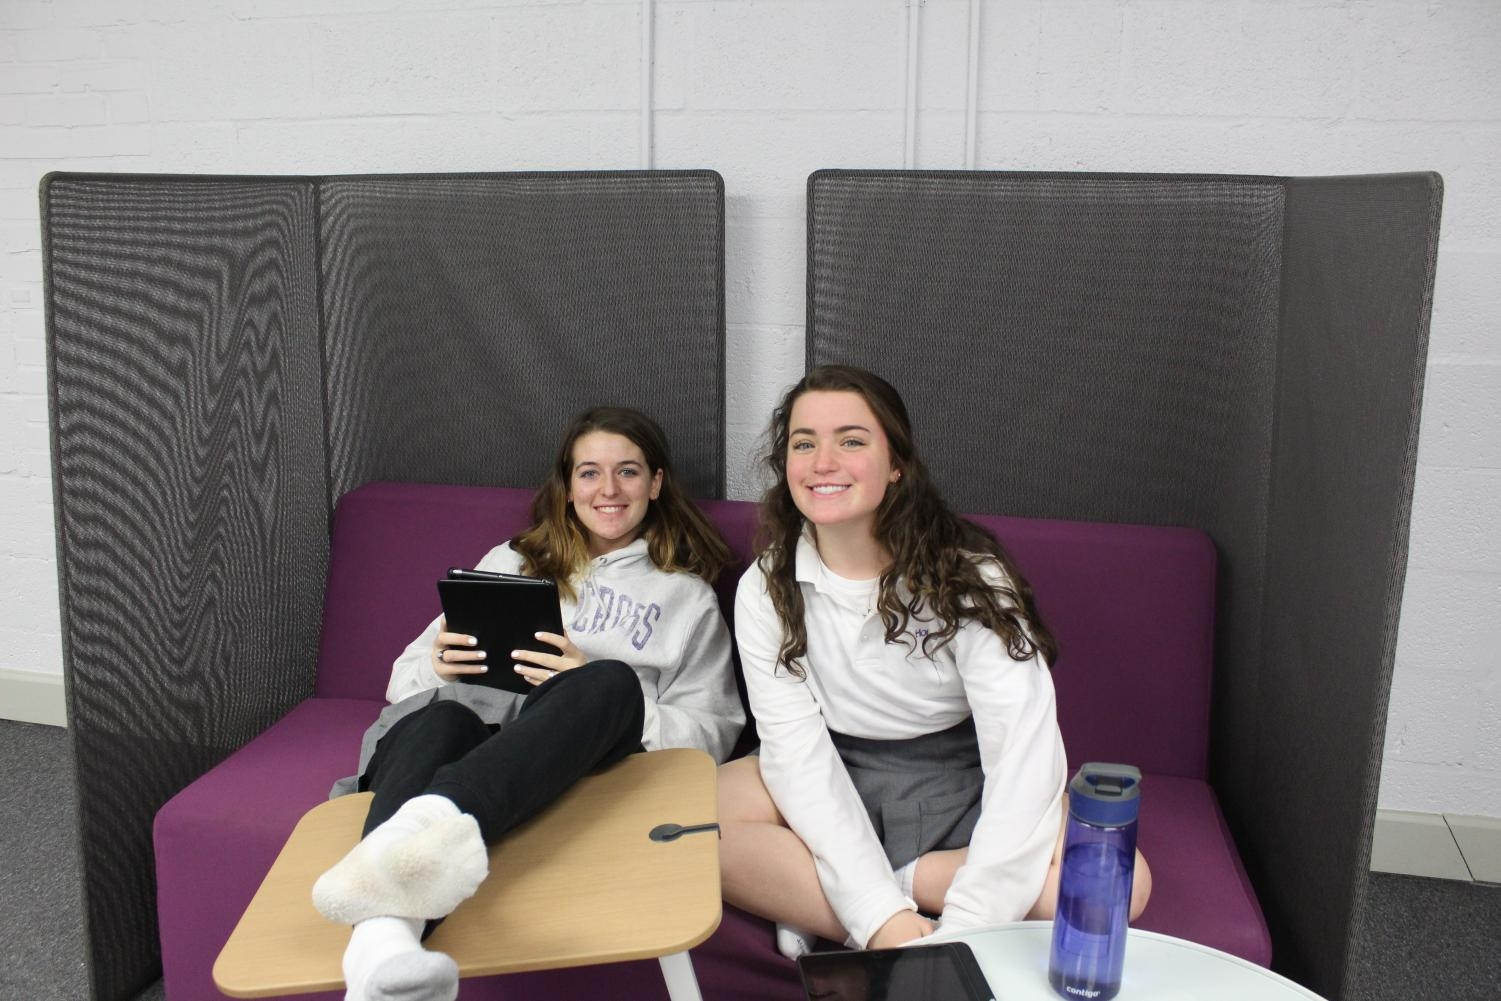 Izzy Mitchell and Annie Malouf study hard in the tech lounge.